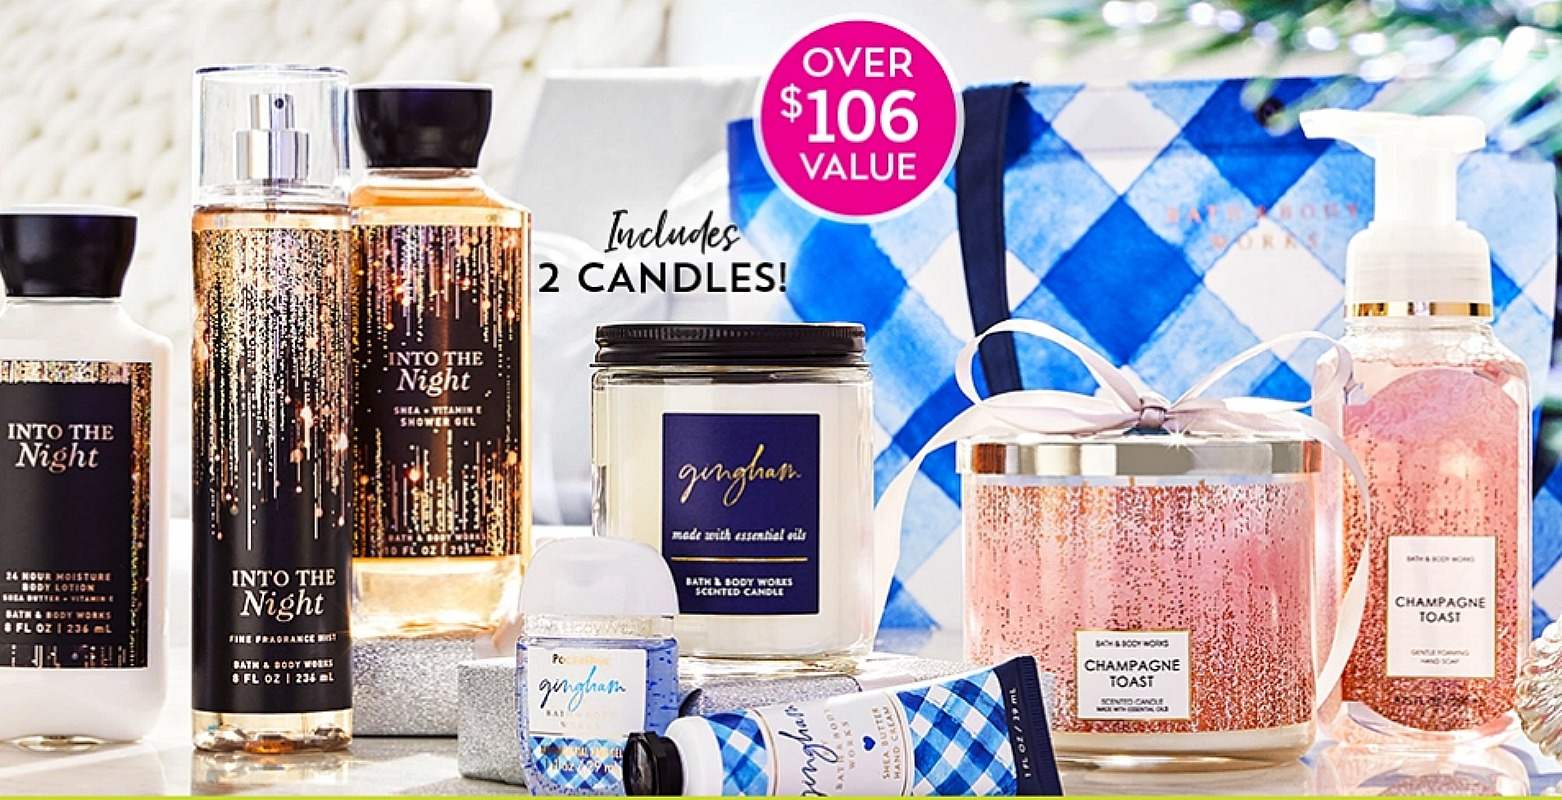 Black Friday Bath & Body Works Deals – $4.95 Body Care & More! *EXPIRED*